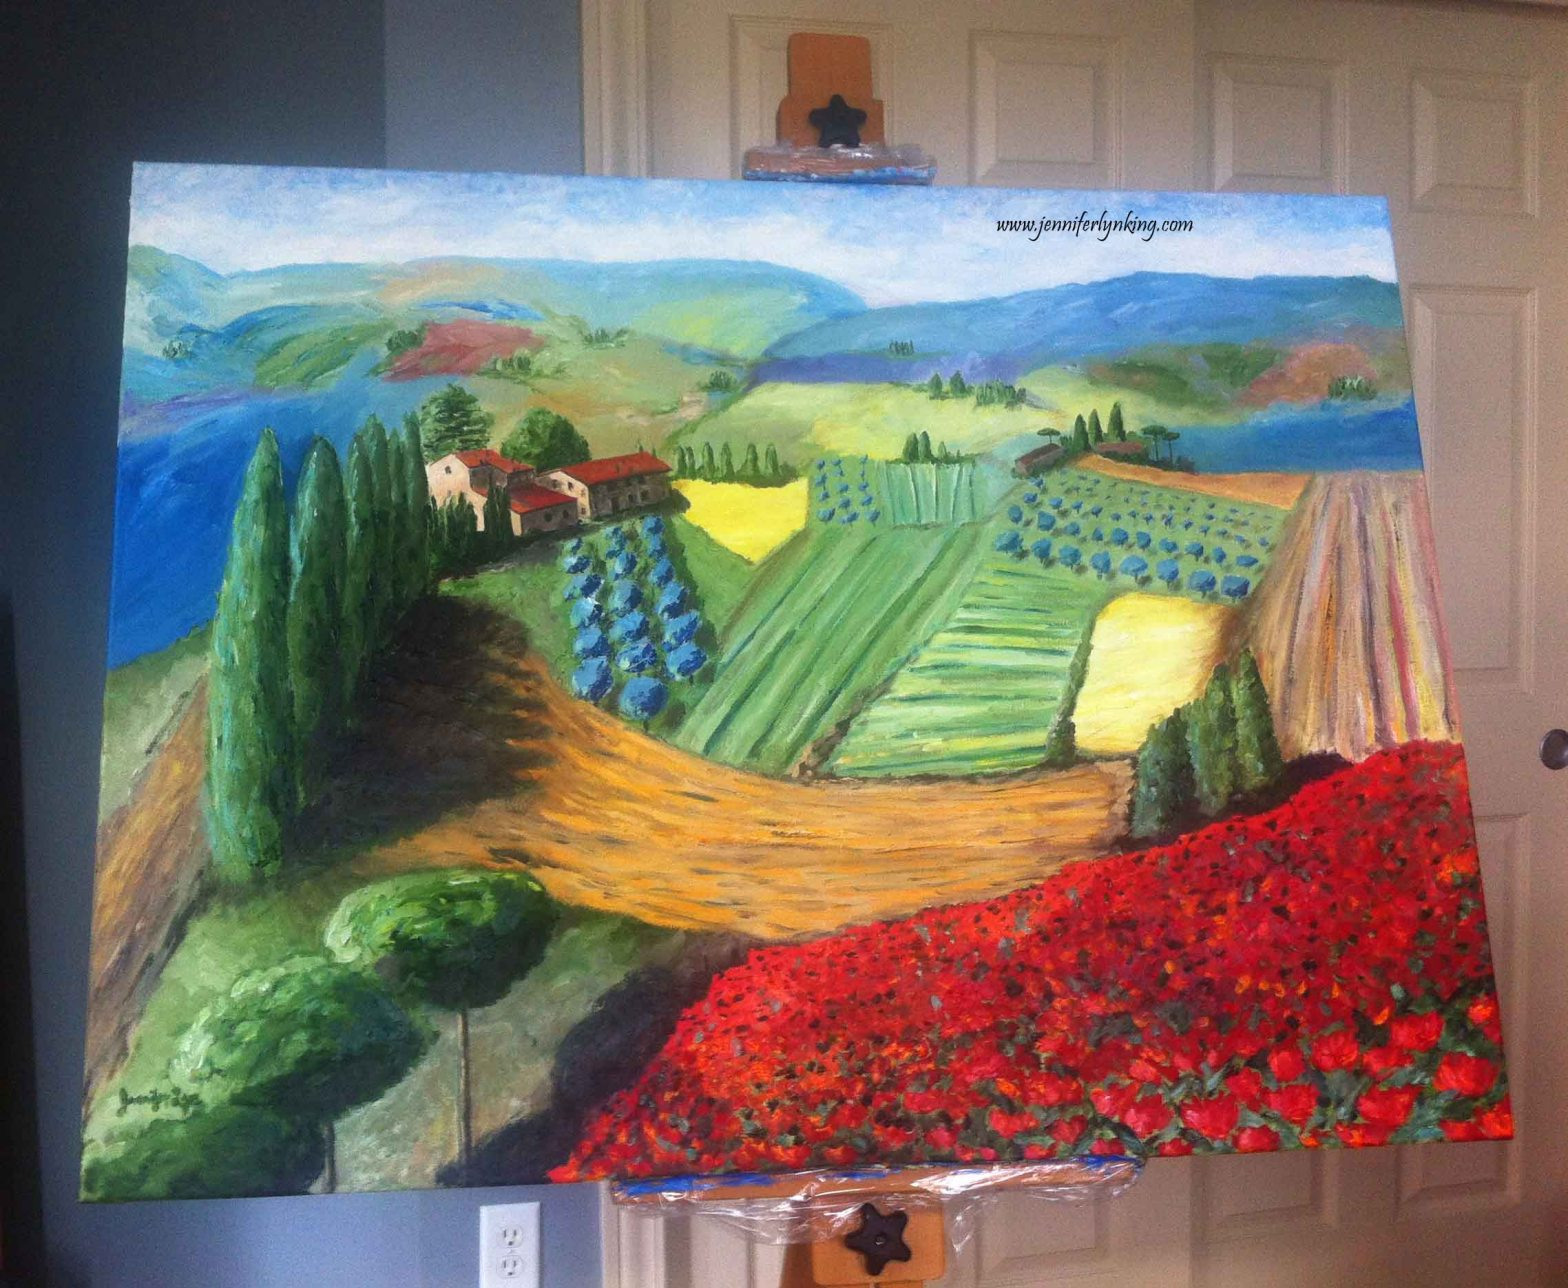 "My biggest painting yet, 36"" x 24"", The View of Tuscany from Siena's Walls"